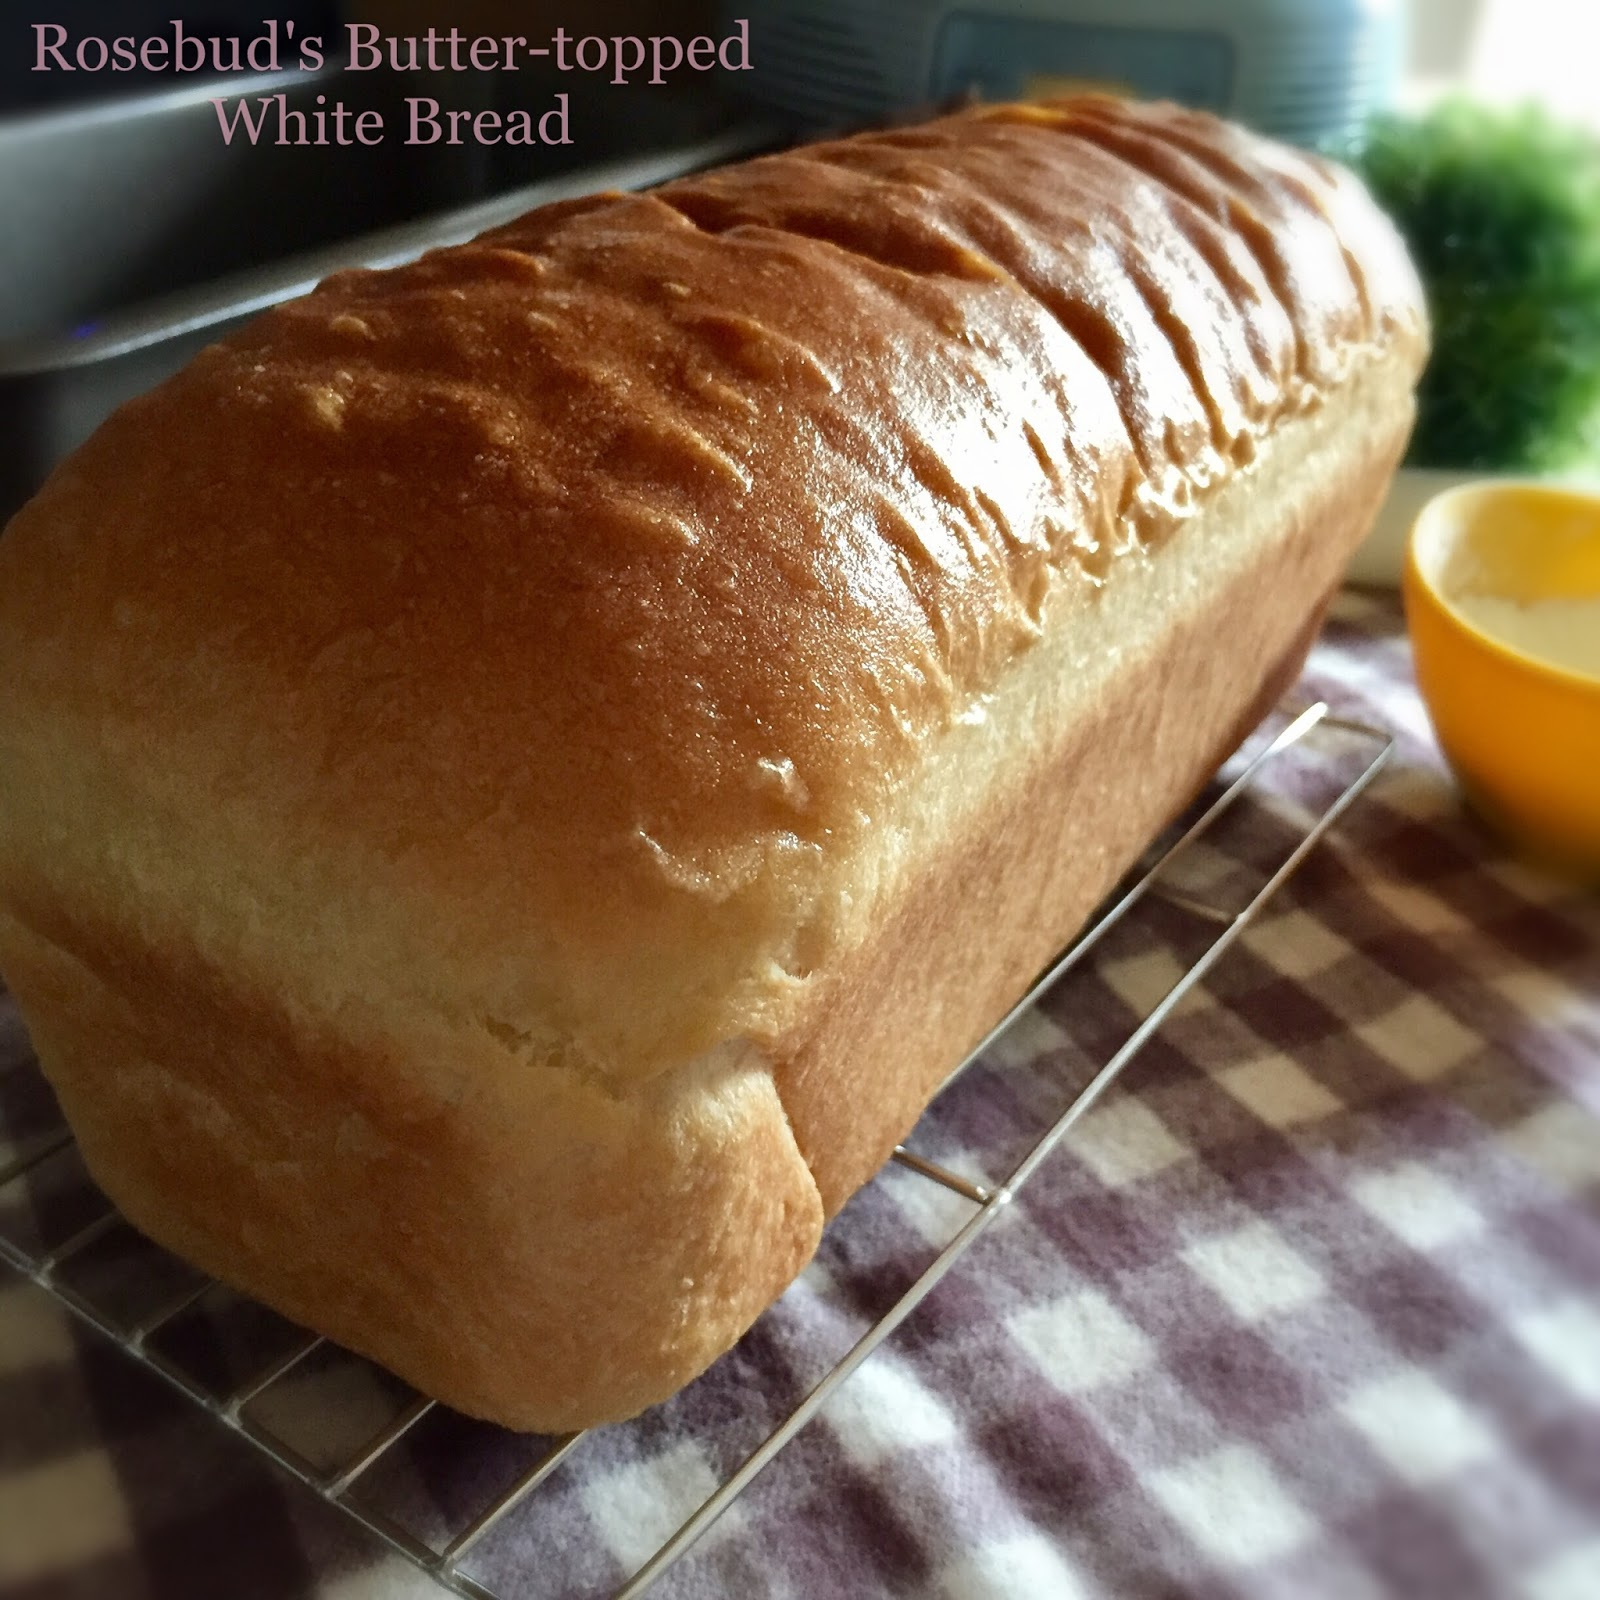 It's a simple white bread, but with a very attractive golden buttered ...